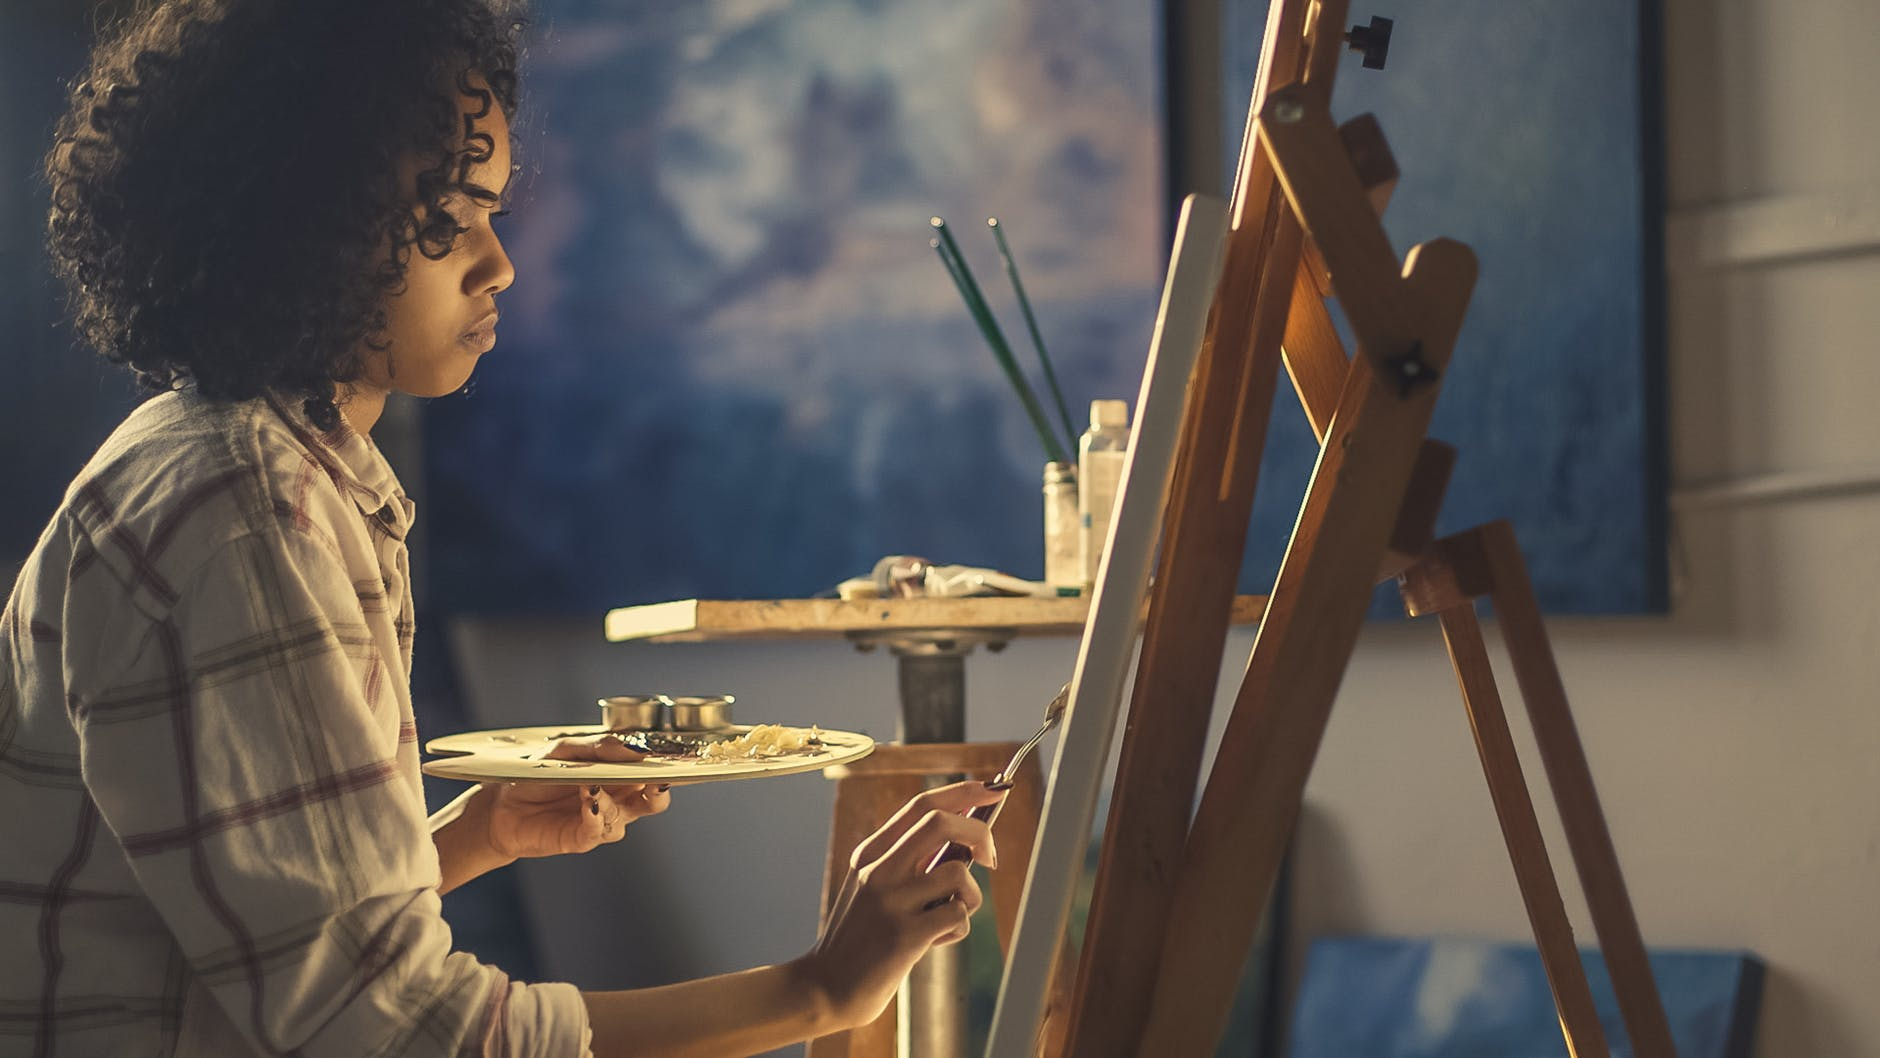 Girl in white shirt painting on an easel with blue painting in background